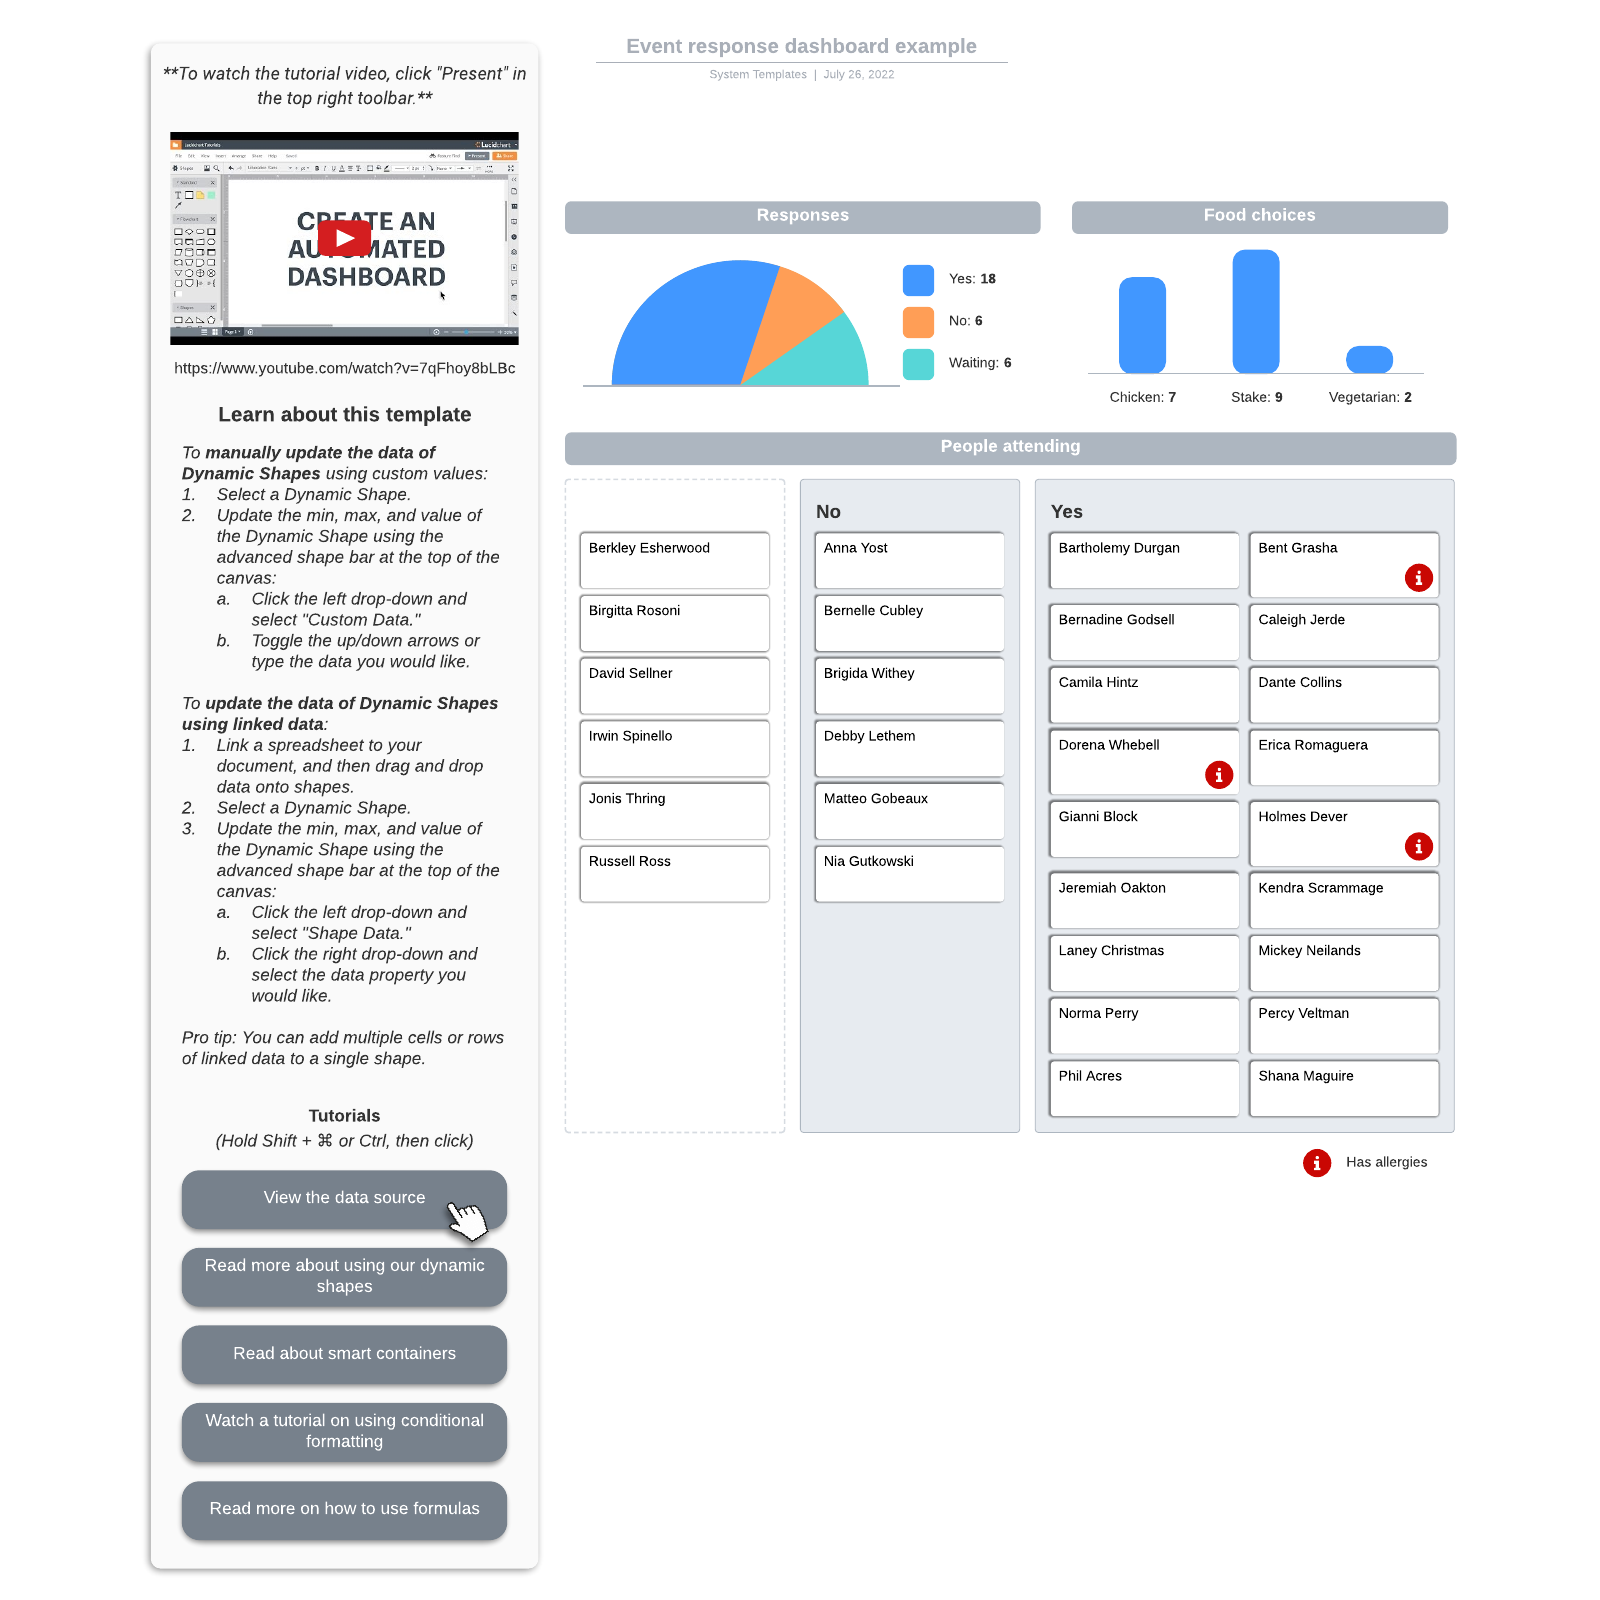 Event response dashboard example